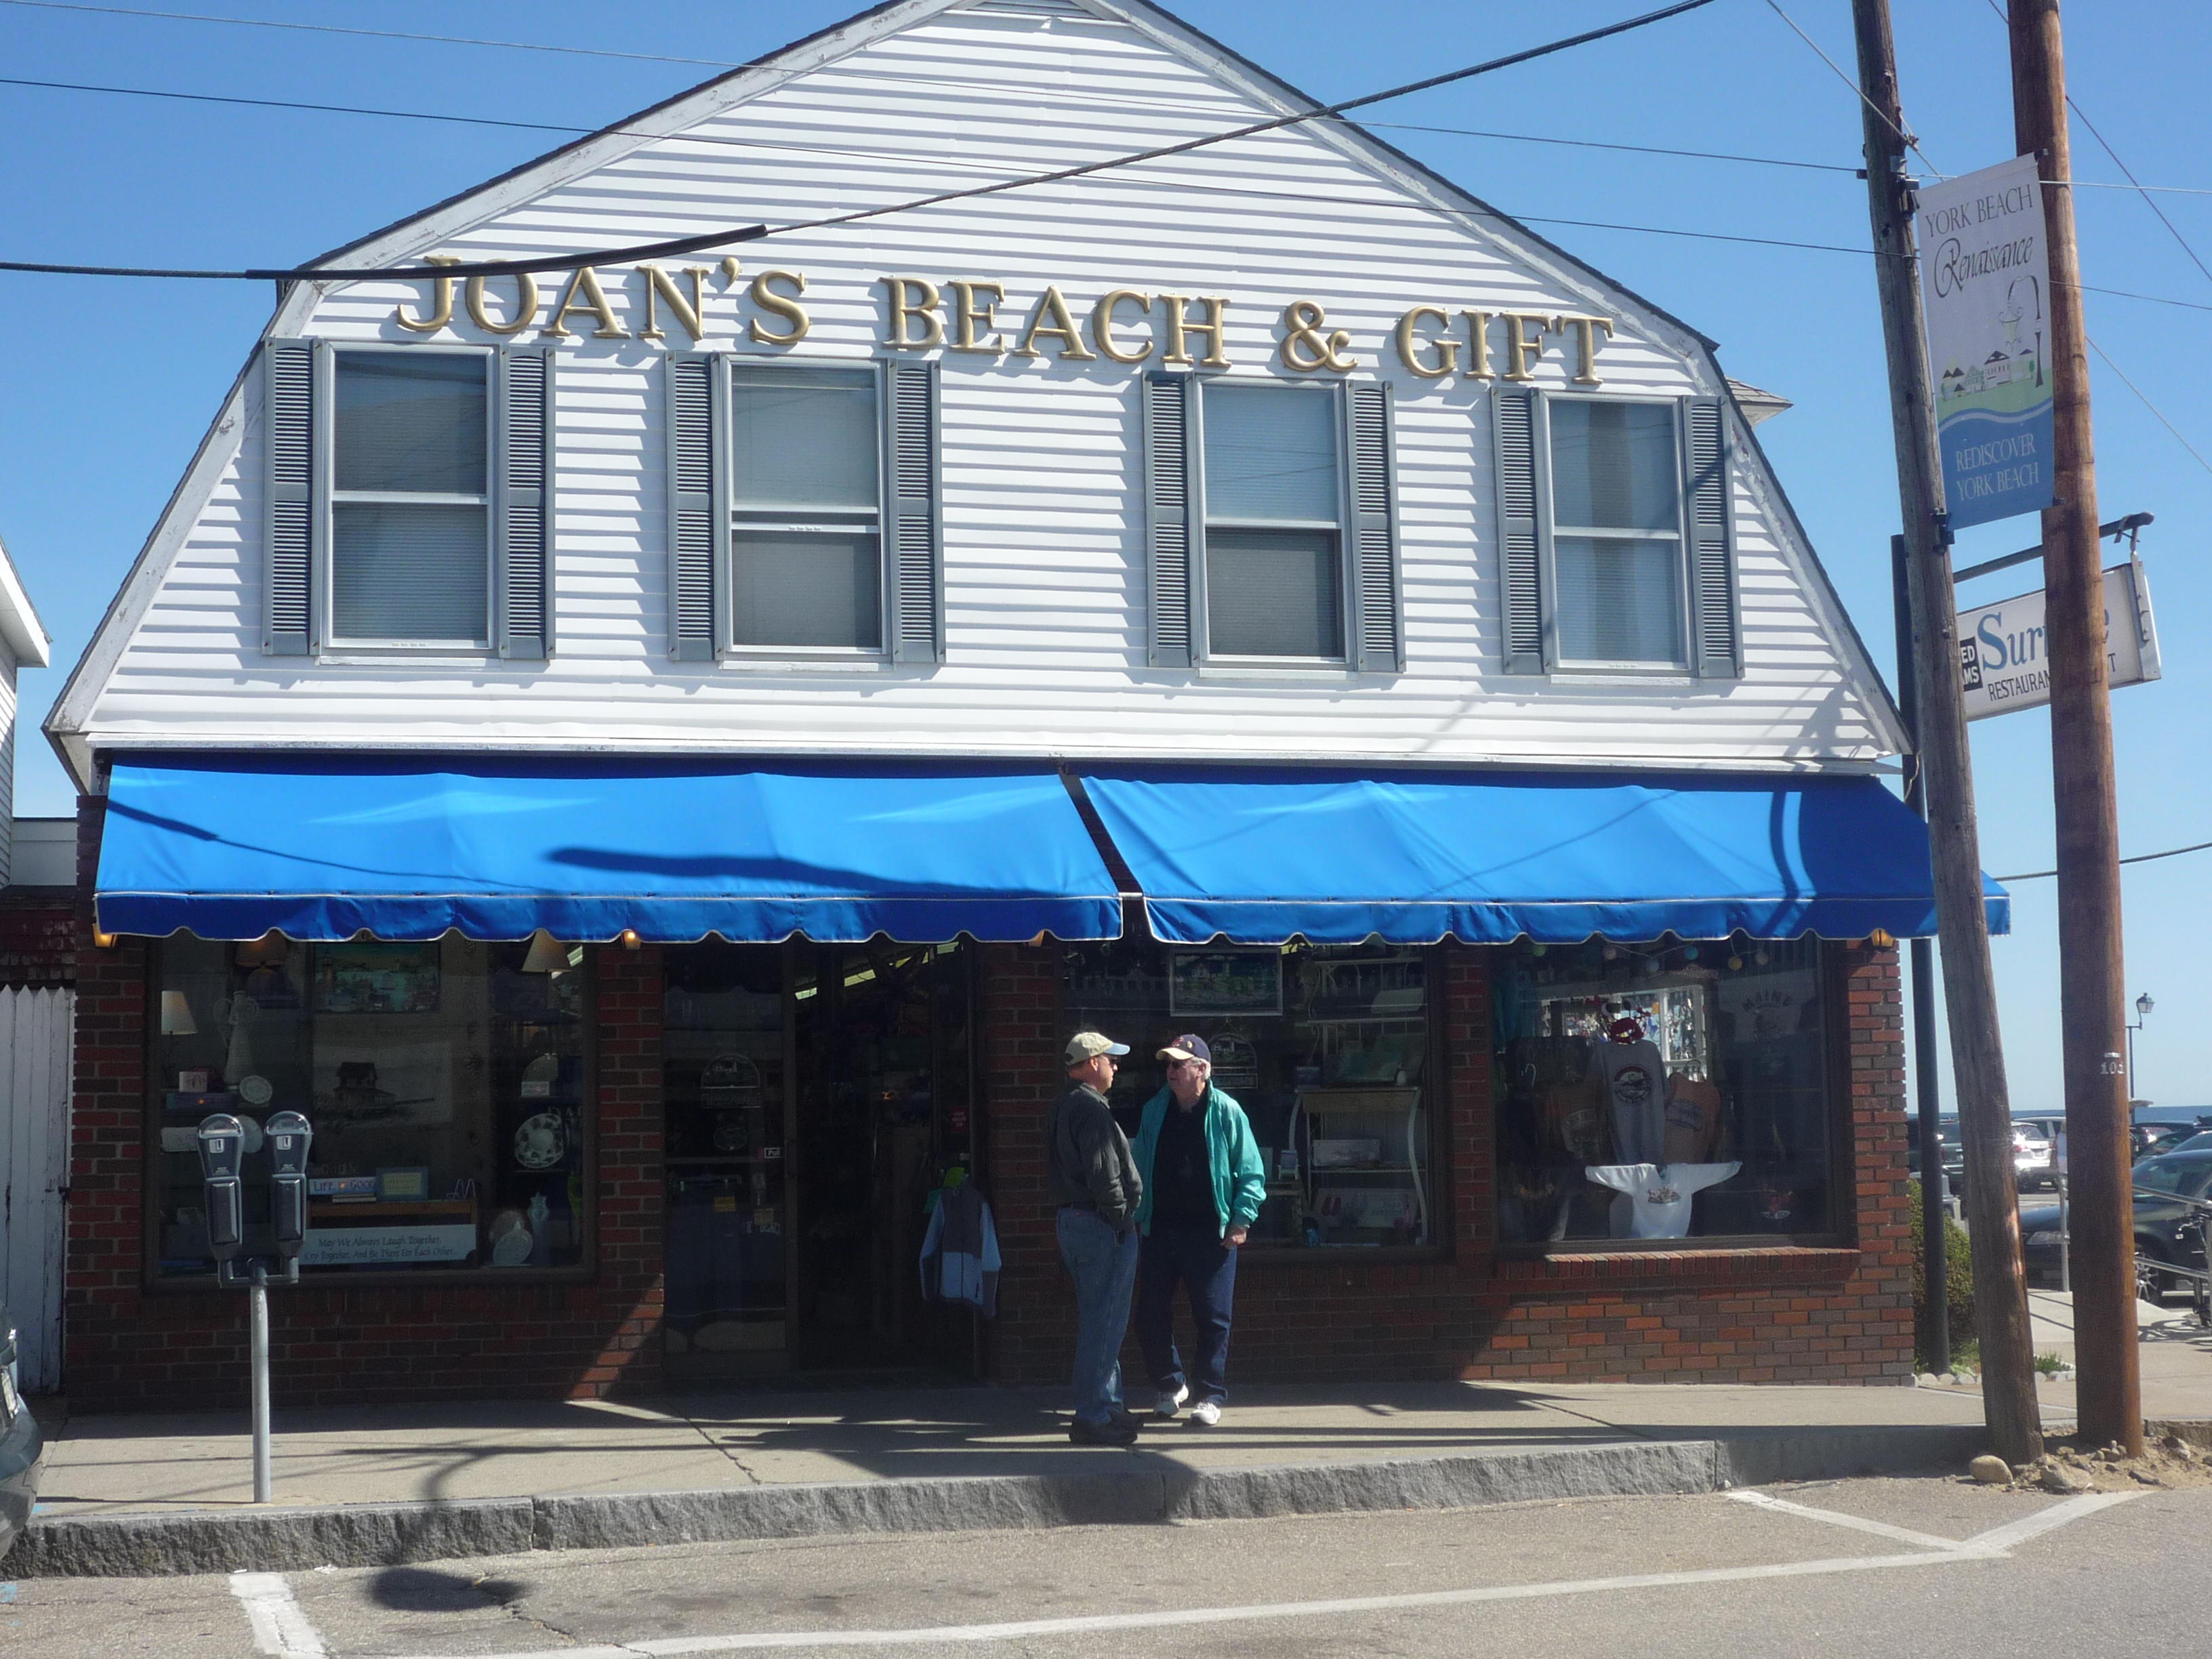 Joan's Beach and Gift: an Affordable Gift Shop in York Beach, Maine